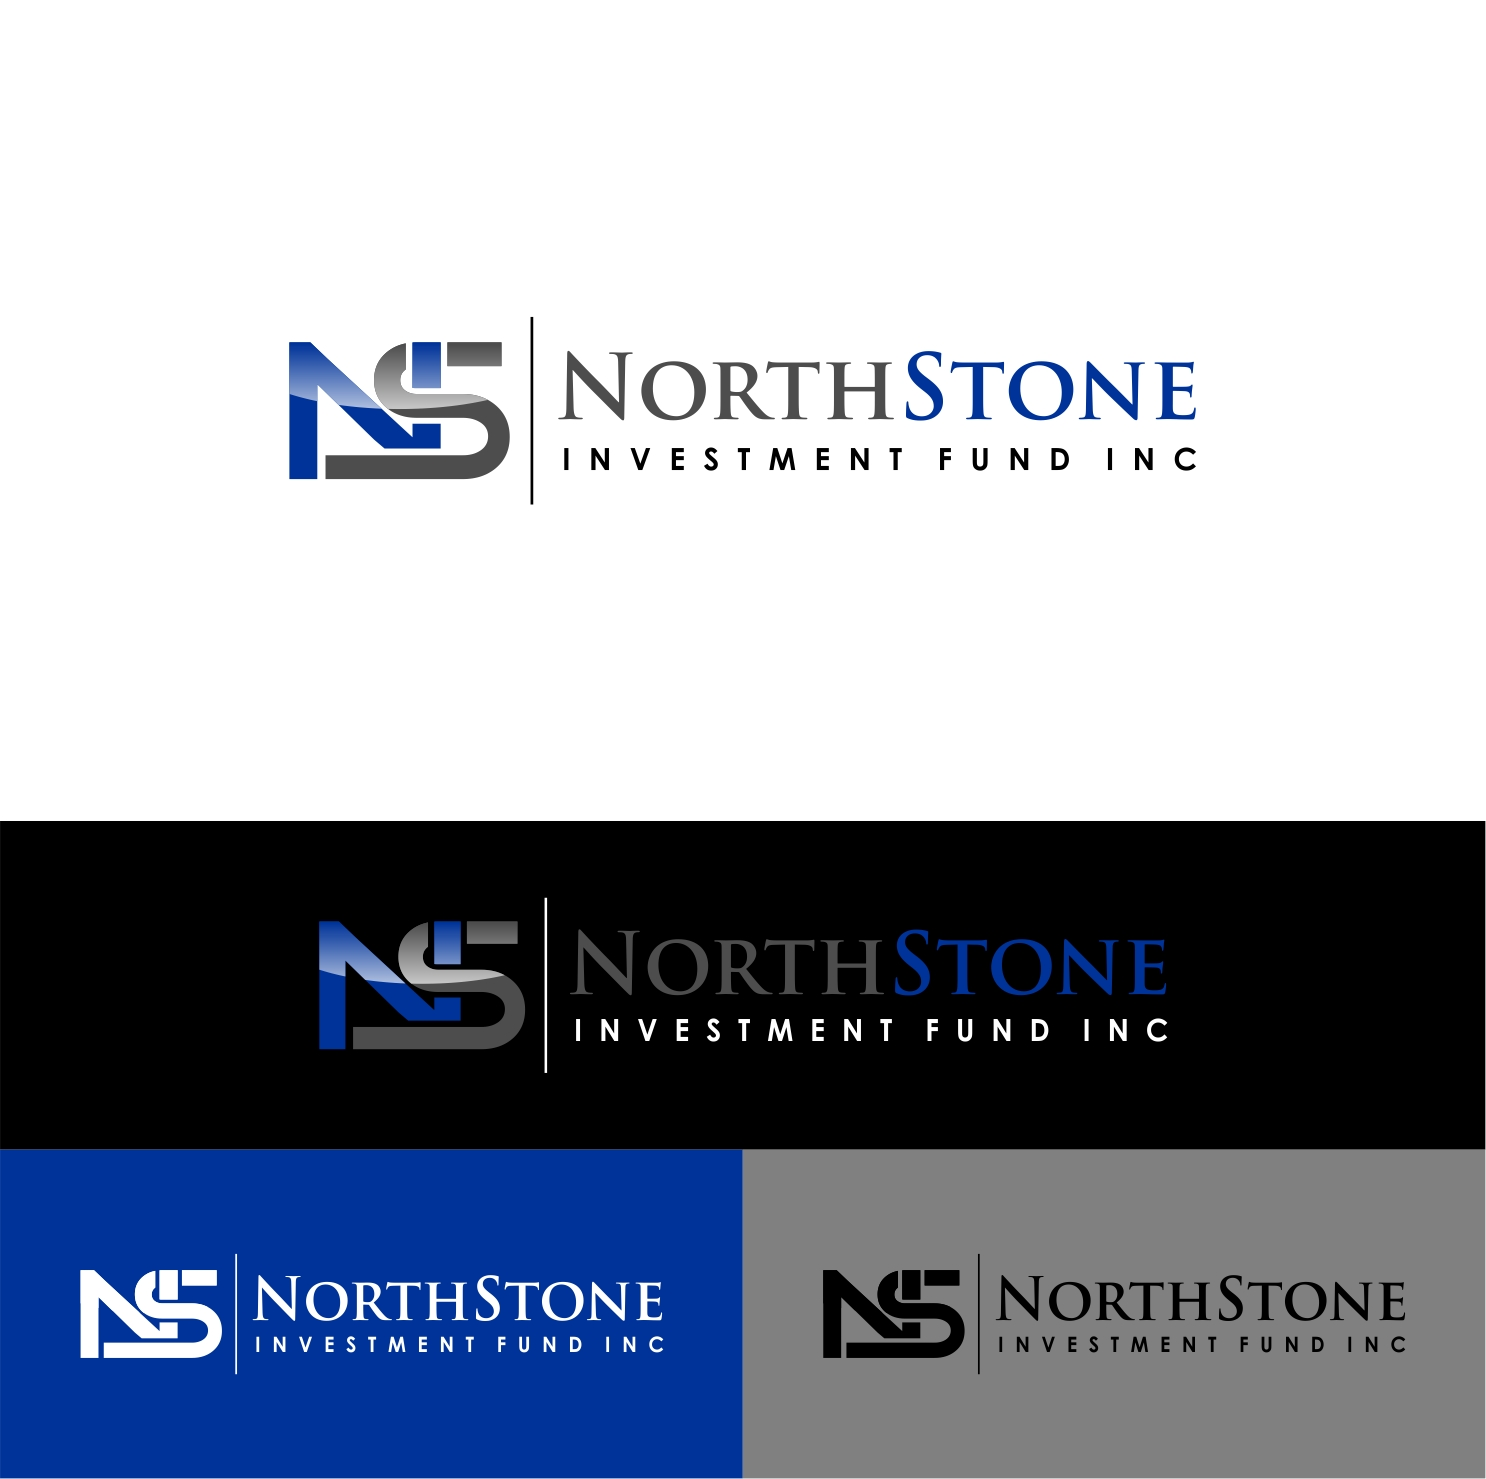 Logo Design by haidu - Entry No. 30 in the Logo Design Contest Unique Logo Design Wanted for NorthStone Investment Fund Inc.